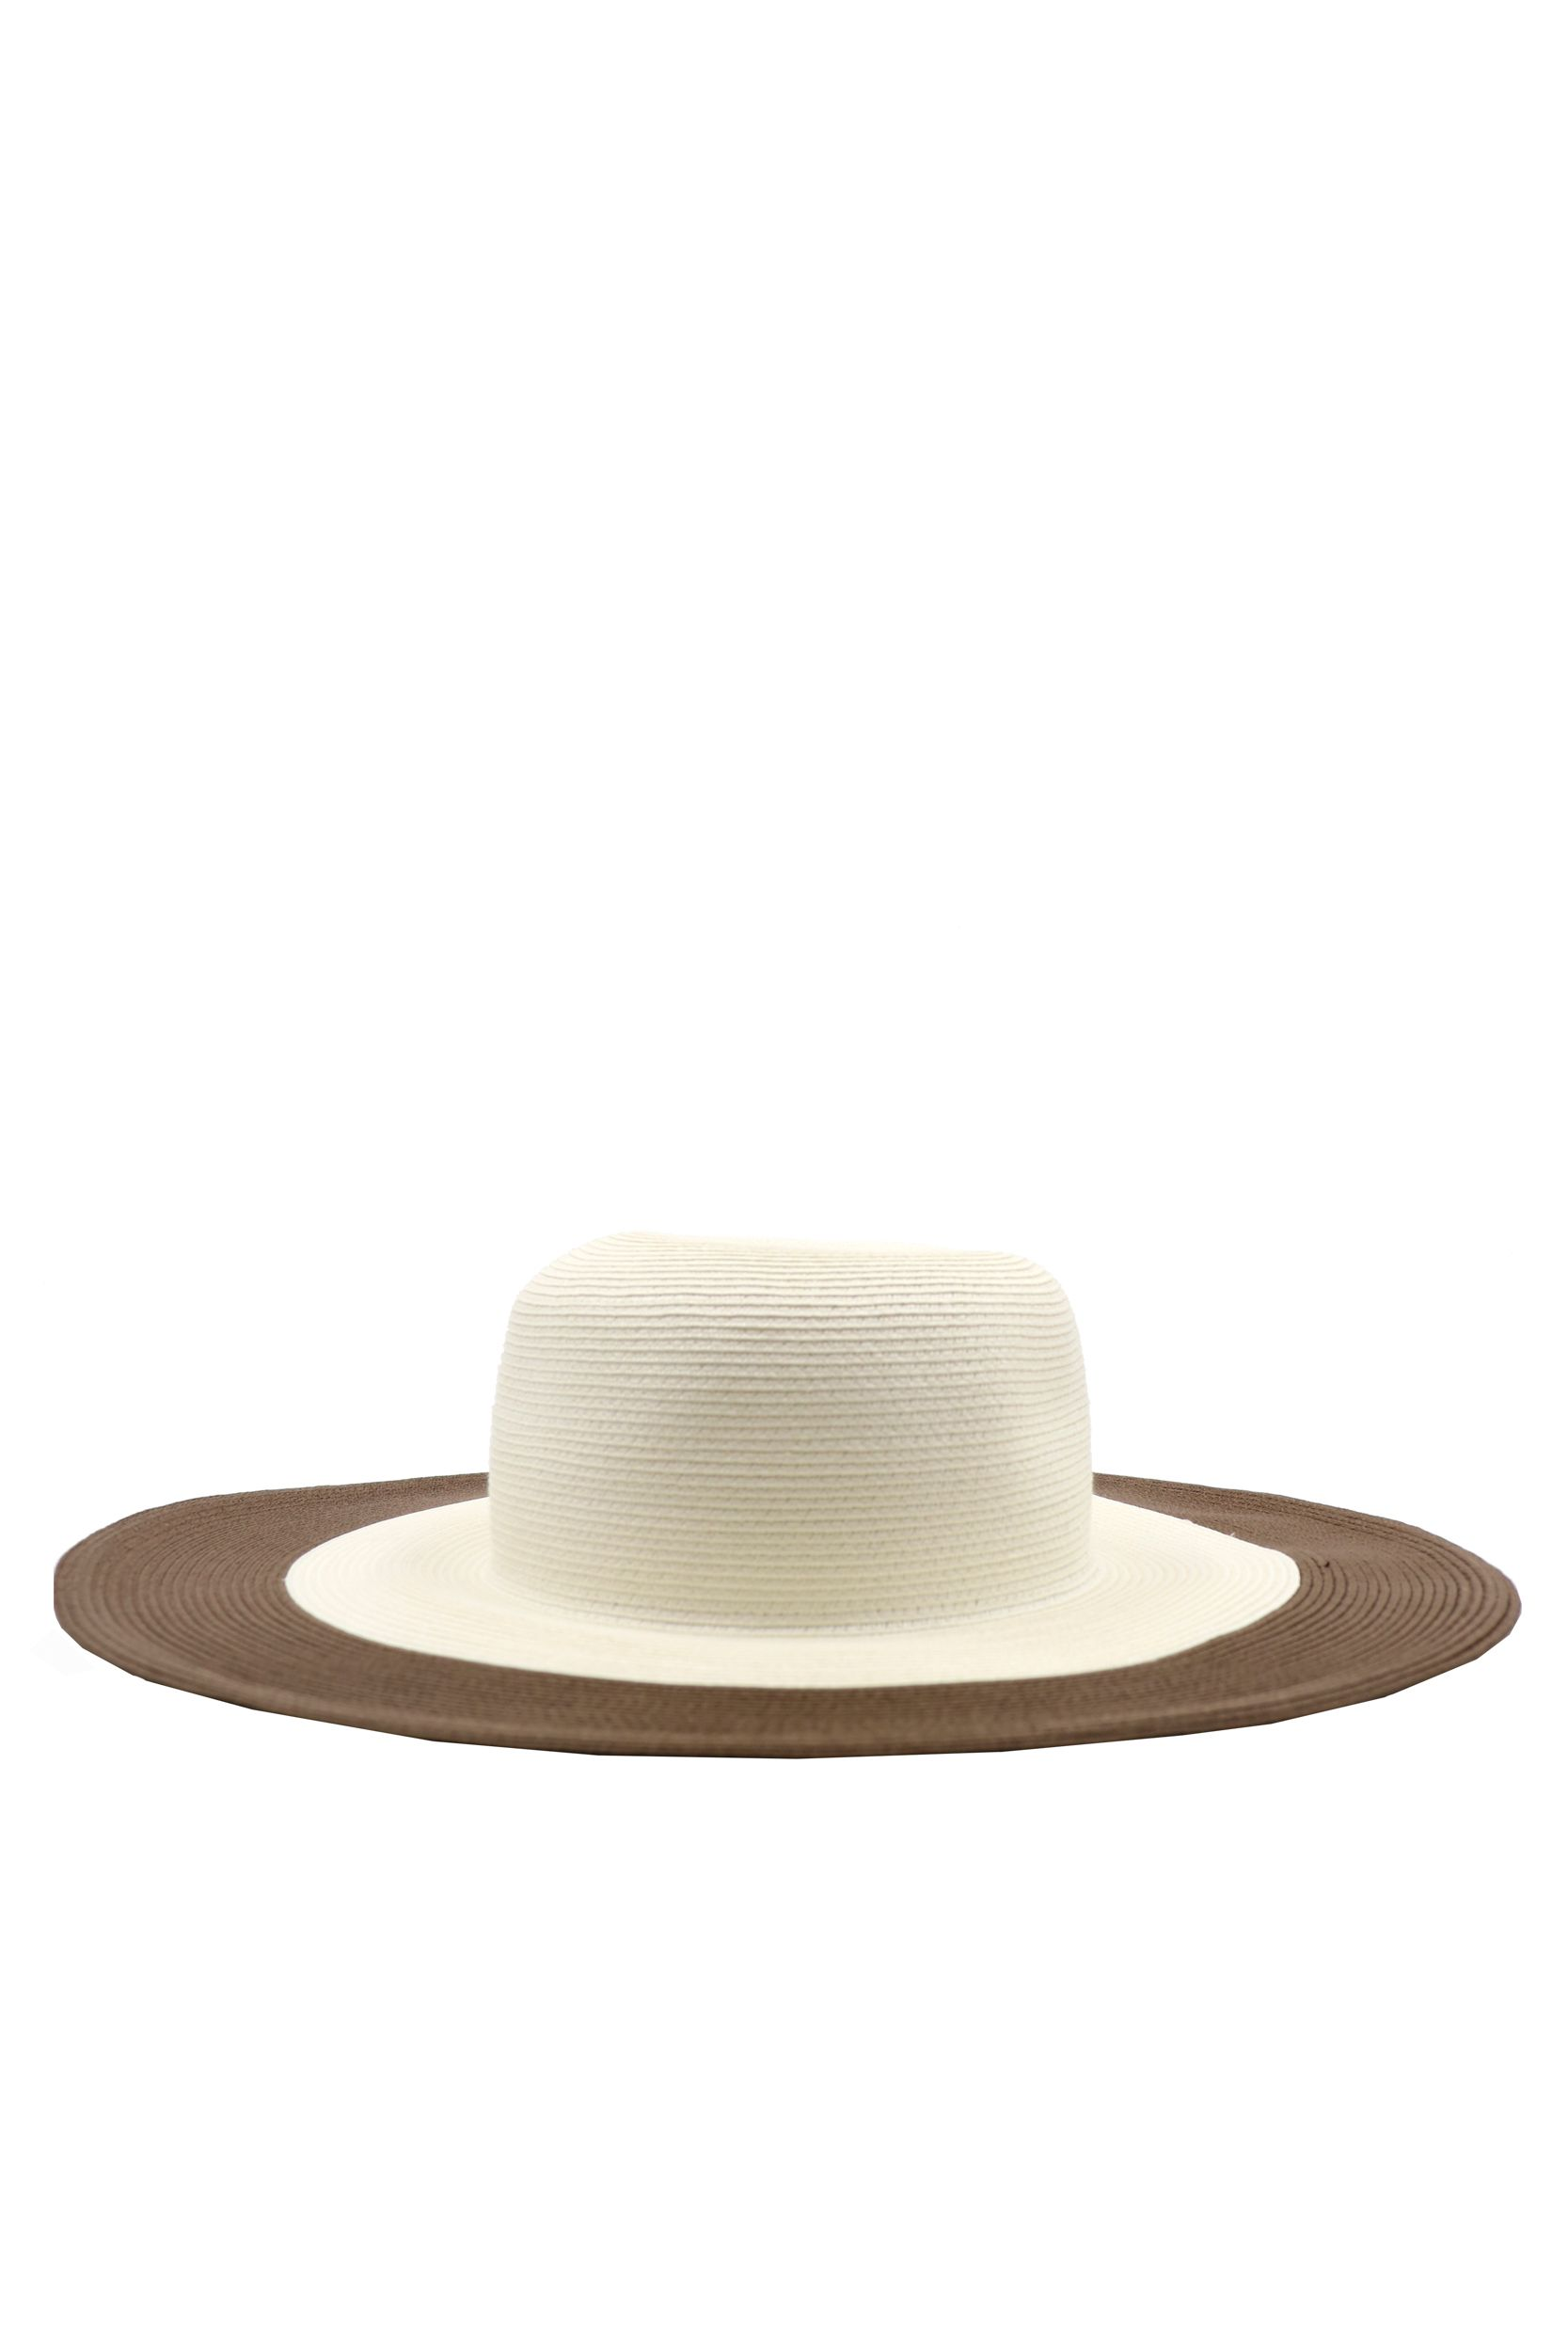 Eleventy ELEVENTY WOMEN'S A80CPLA02TES0A15201 WHITE OTHER MATERIALS HAT